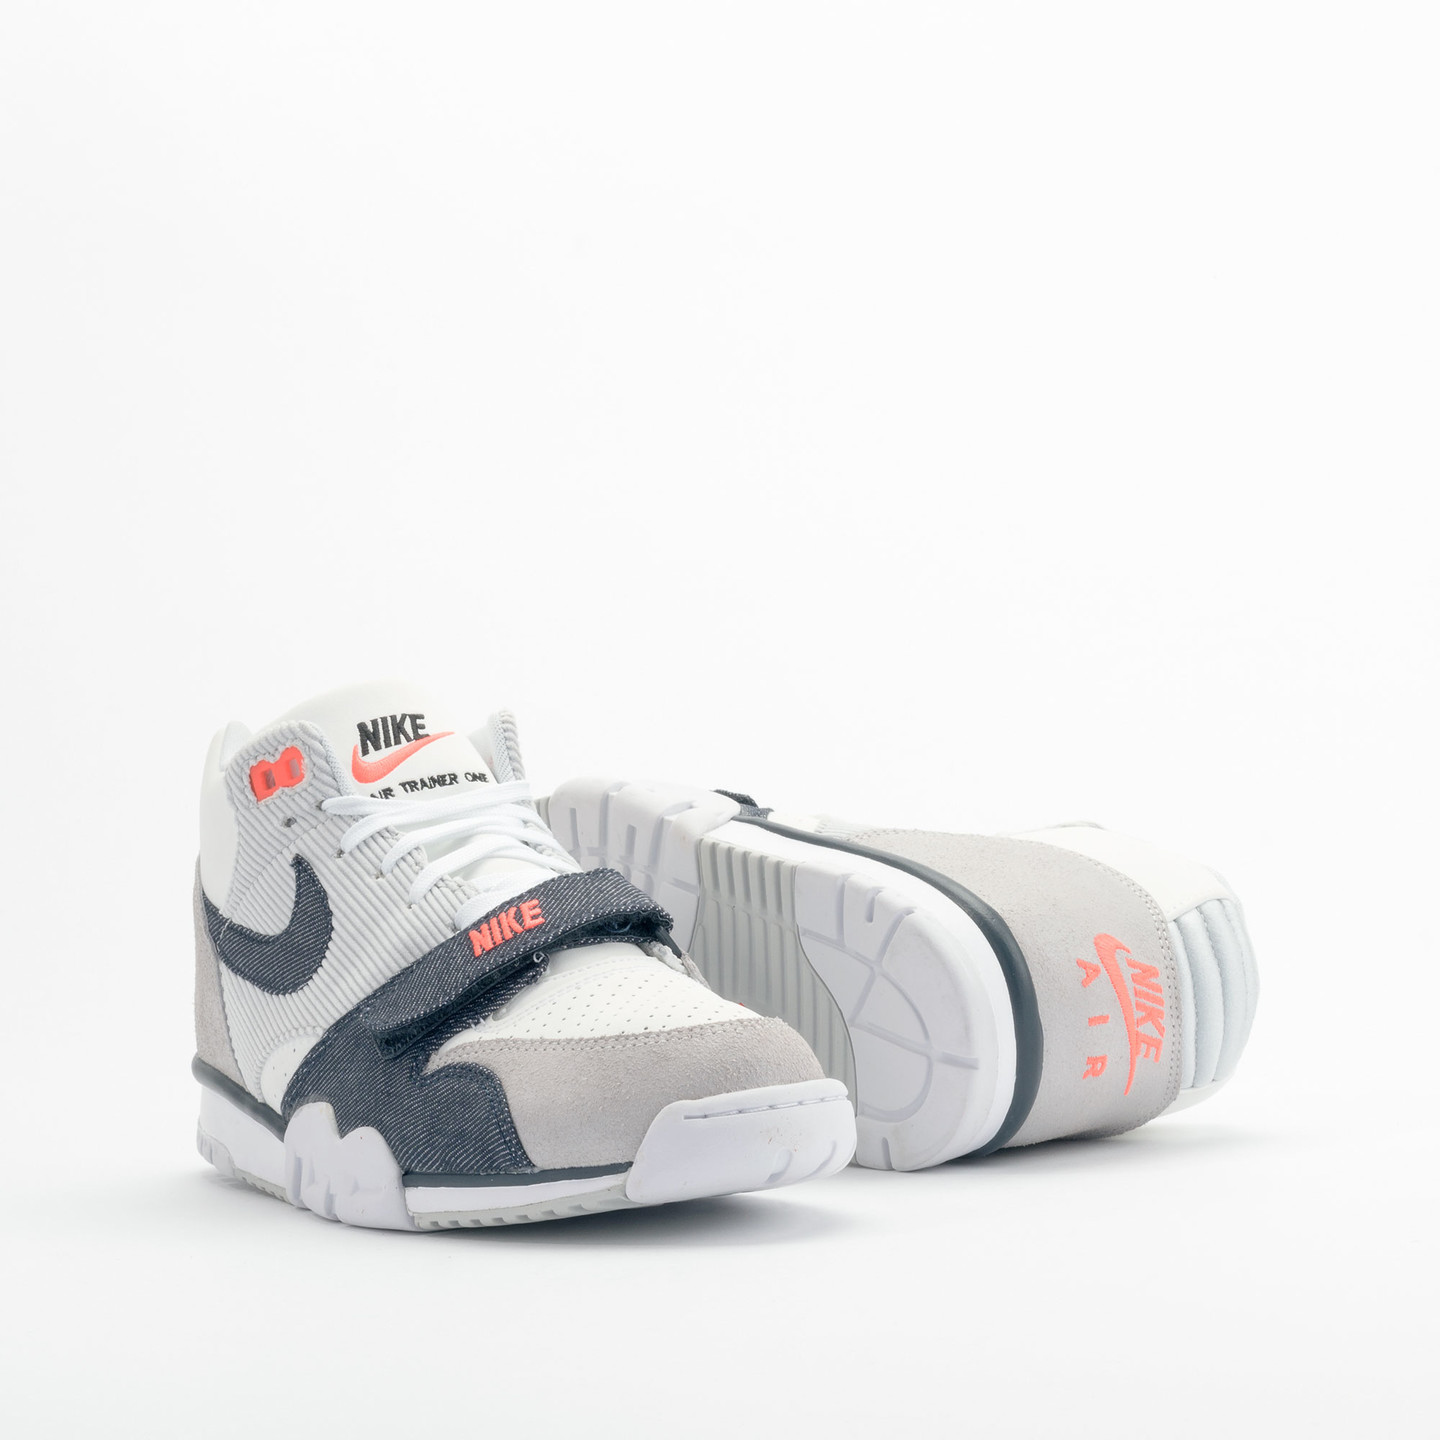 Nike Air Trainer 1 Mid White / Obsidian / Pure Platinum 317554-103-42